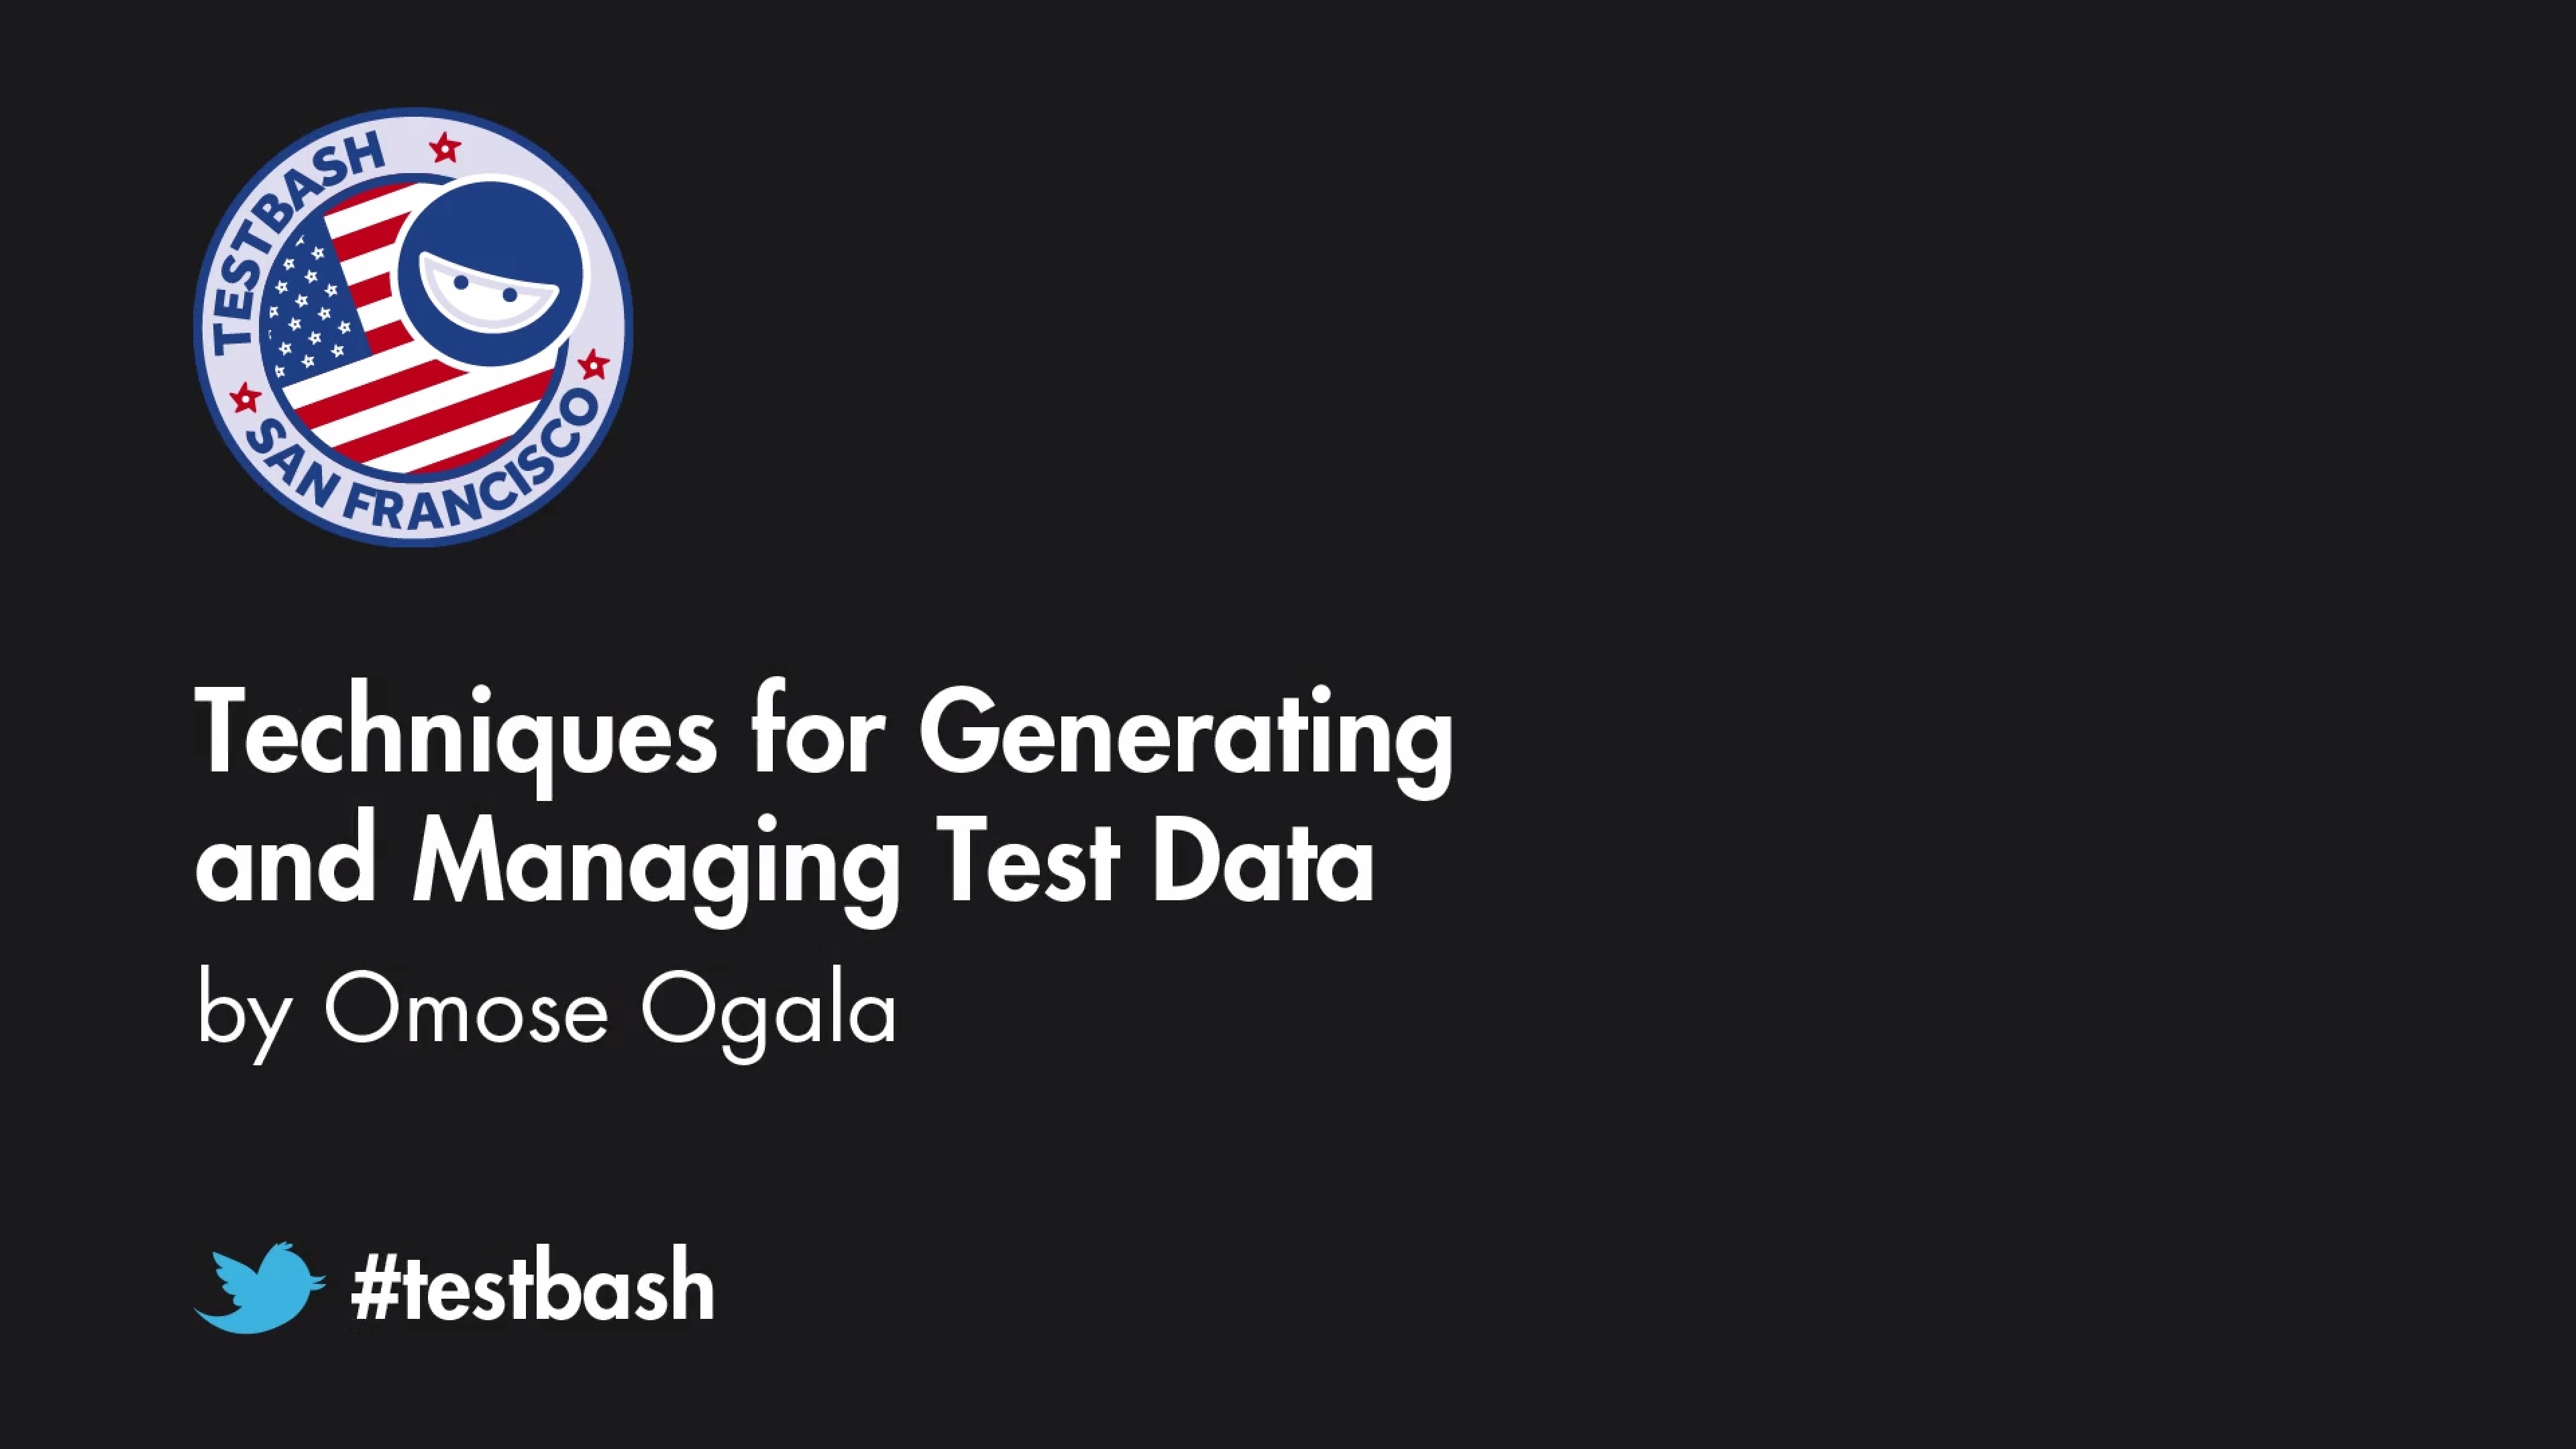 Techniques for Generating and Managing Test Data - Omose Ogala